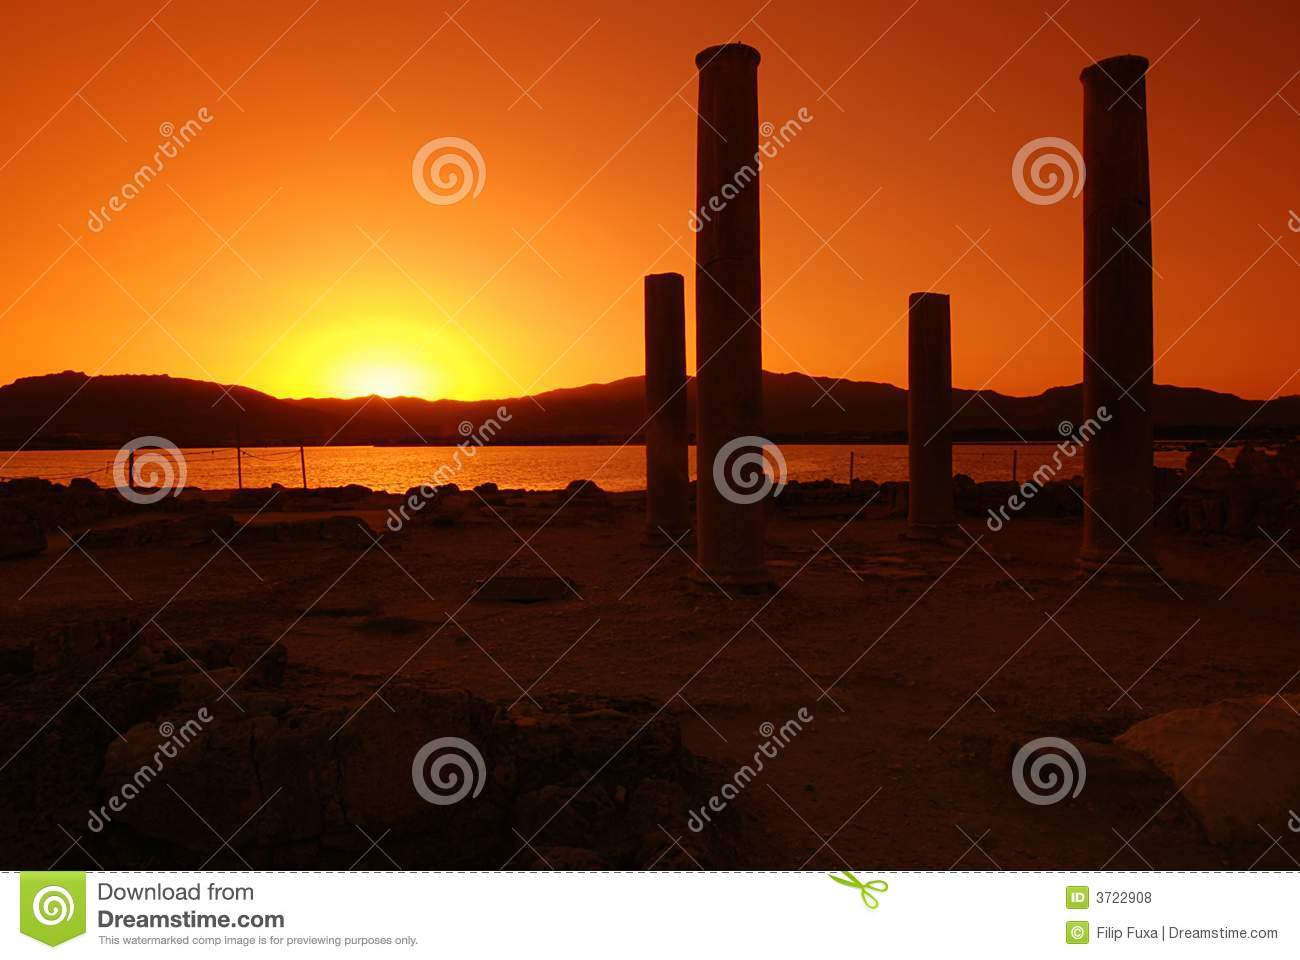 Sunset and ruins